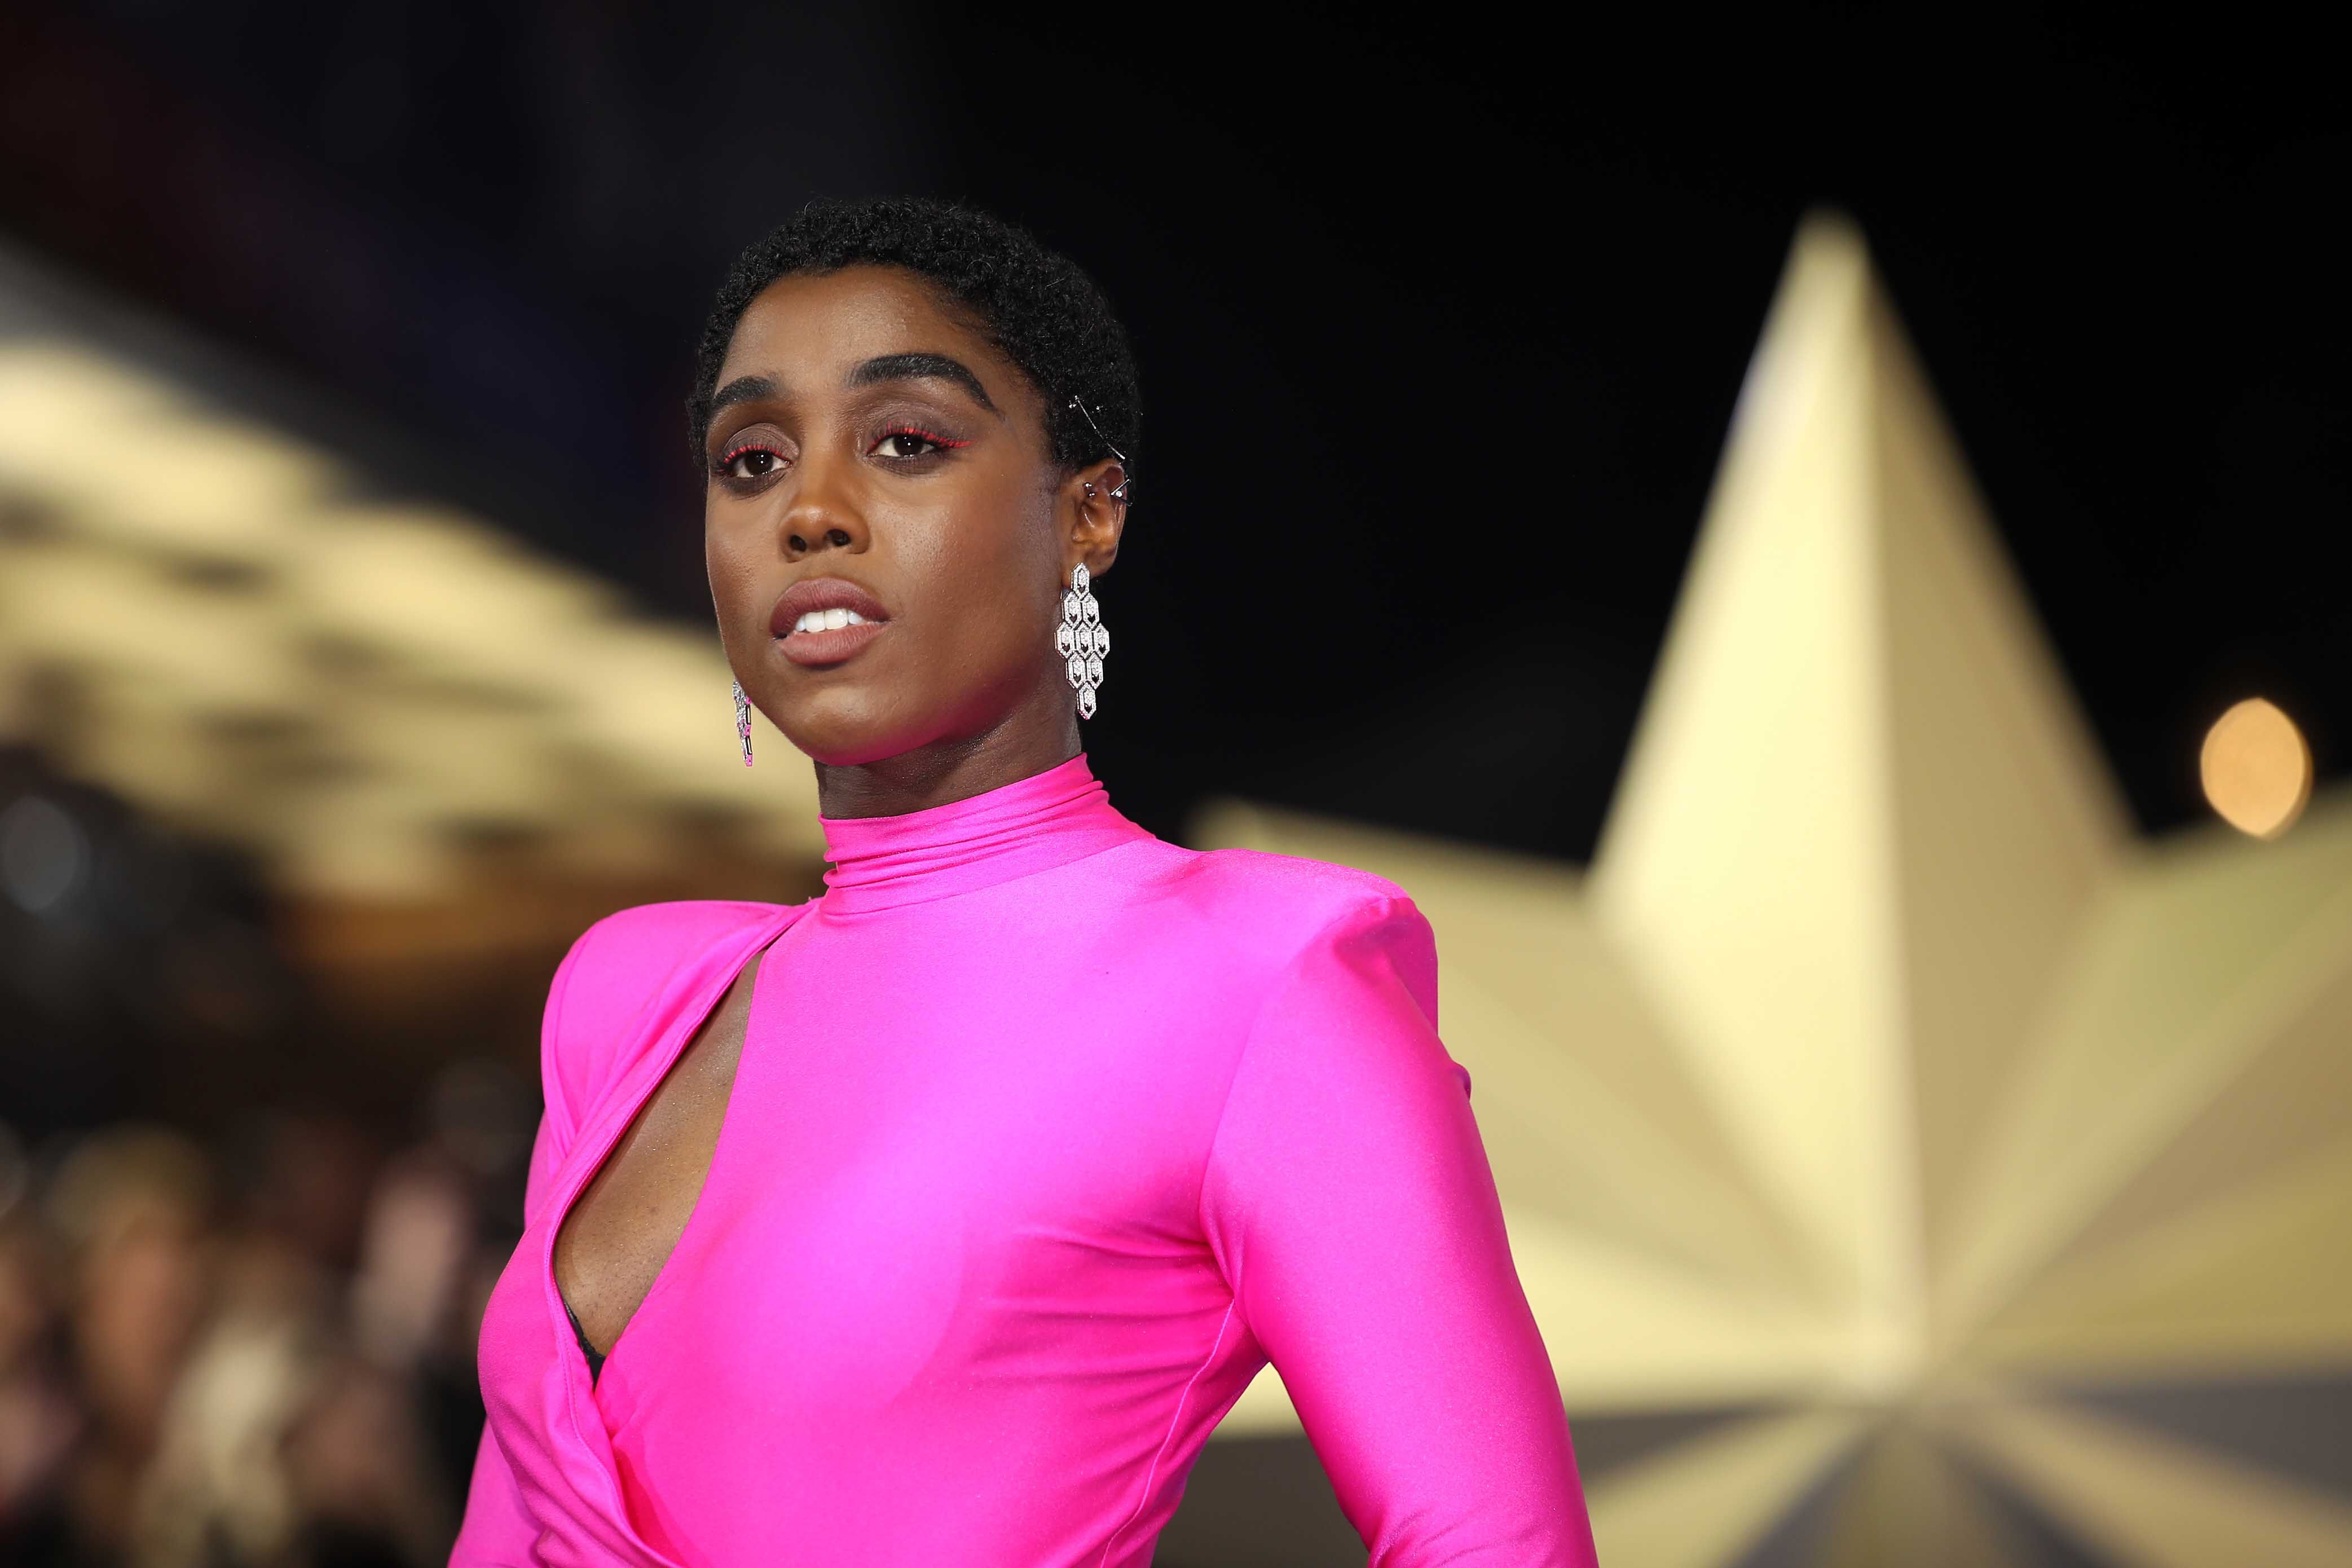 007 Will Be Played By Black British Actress Lashana Lynch in 'Bond 25'